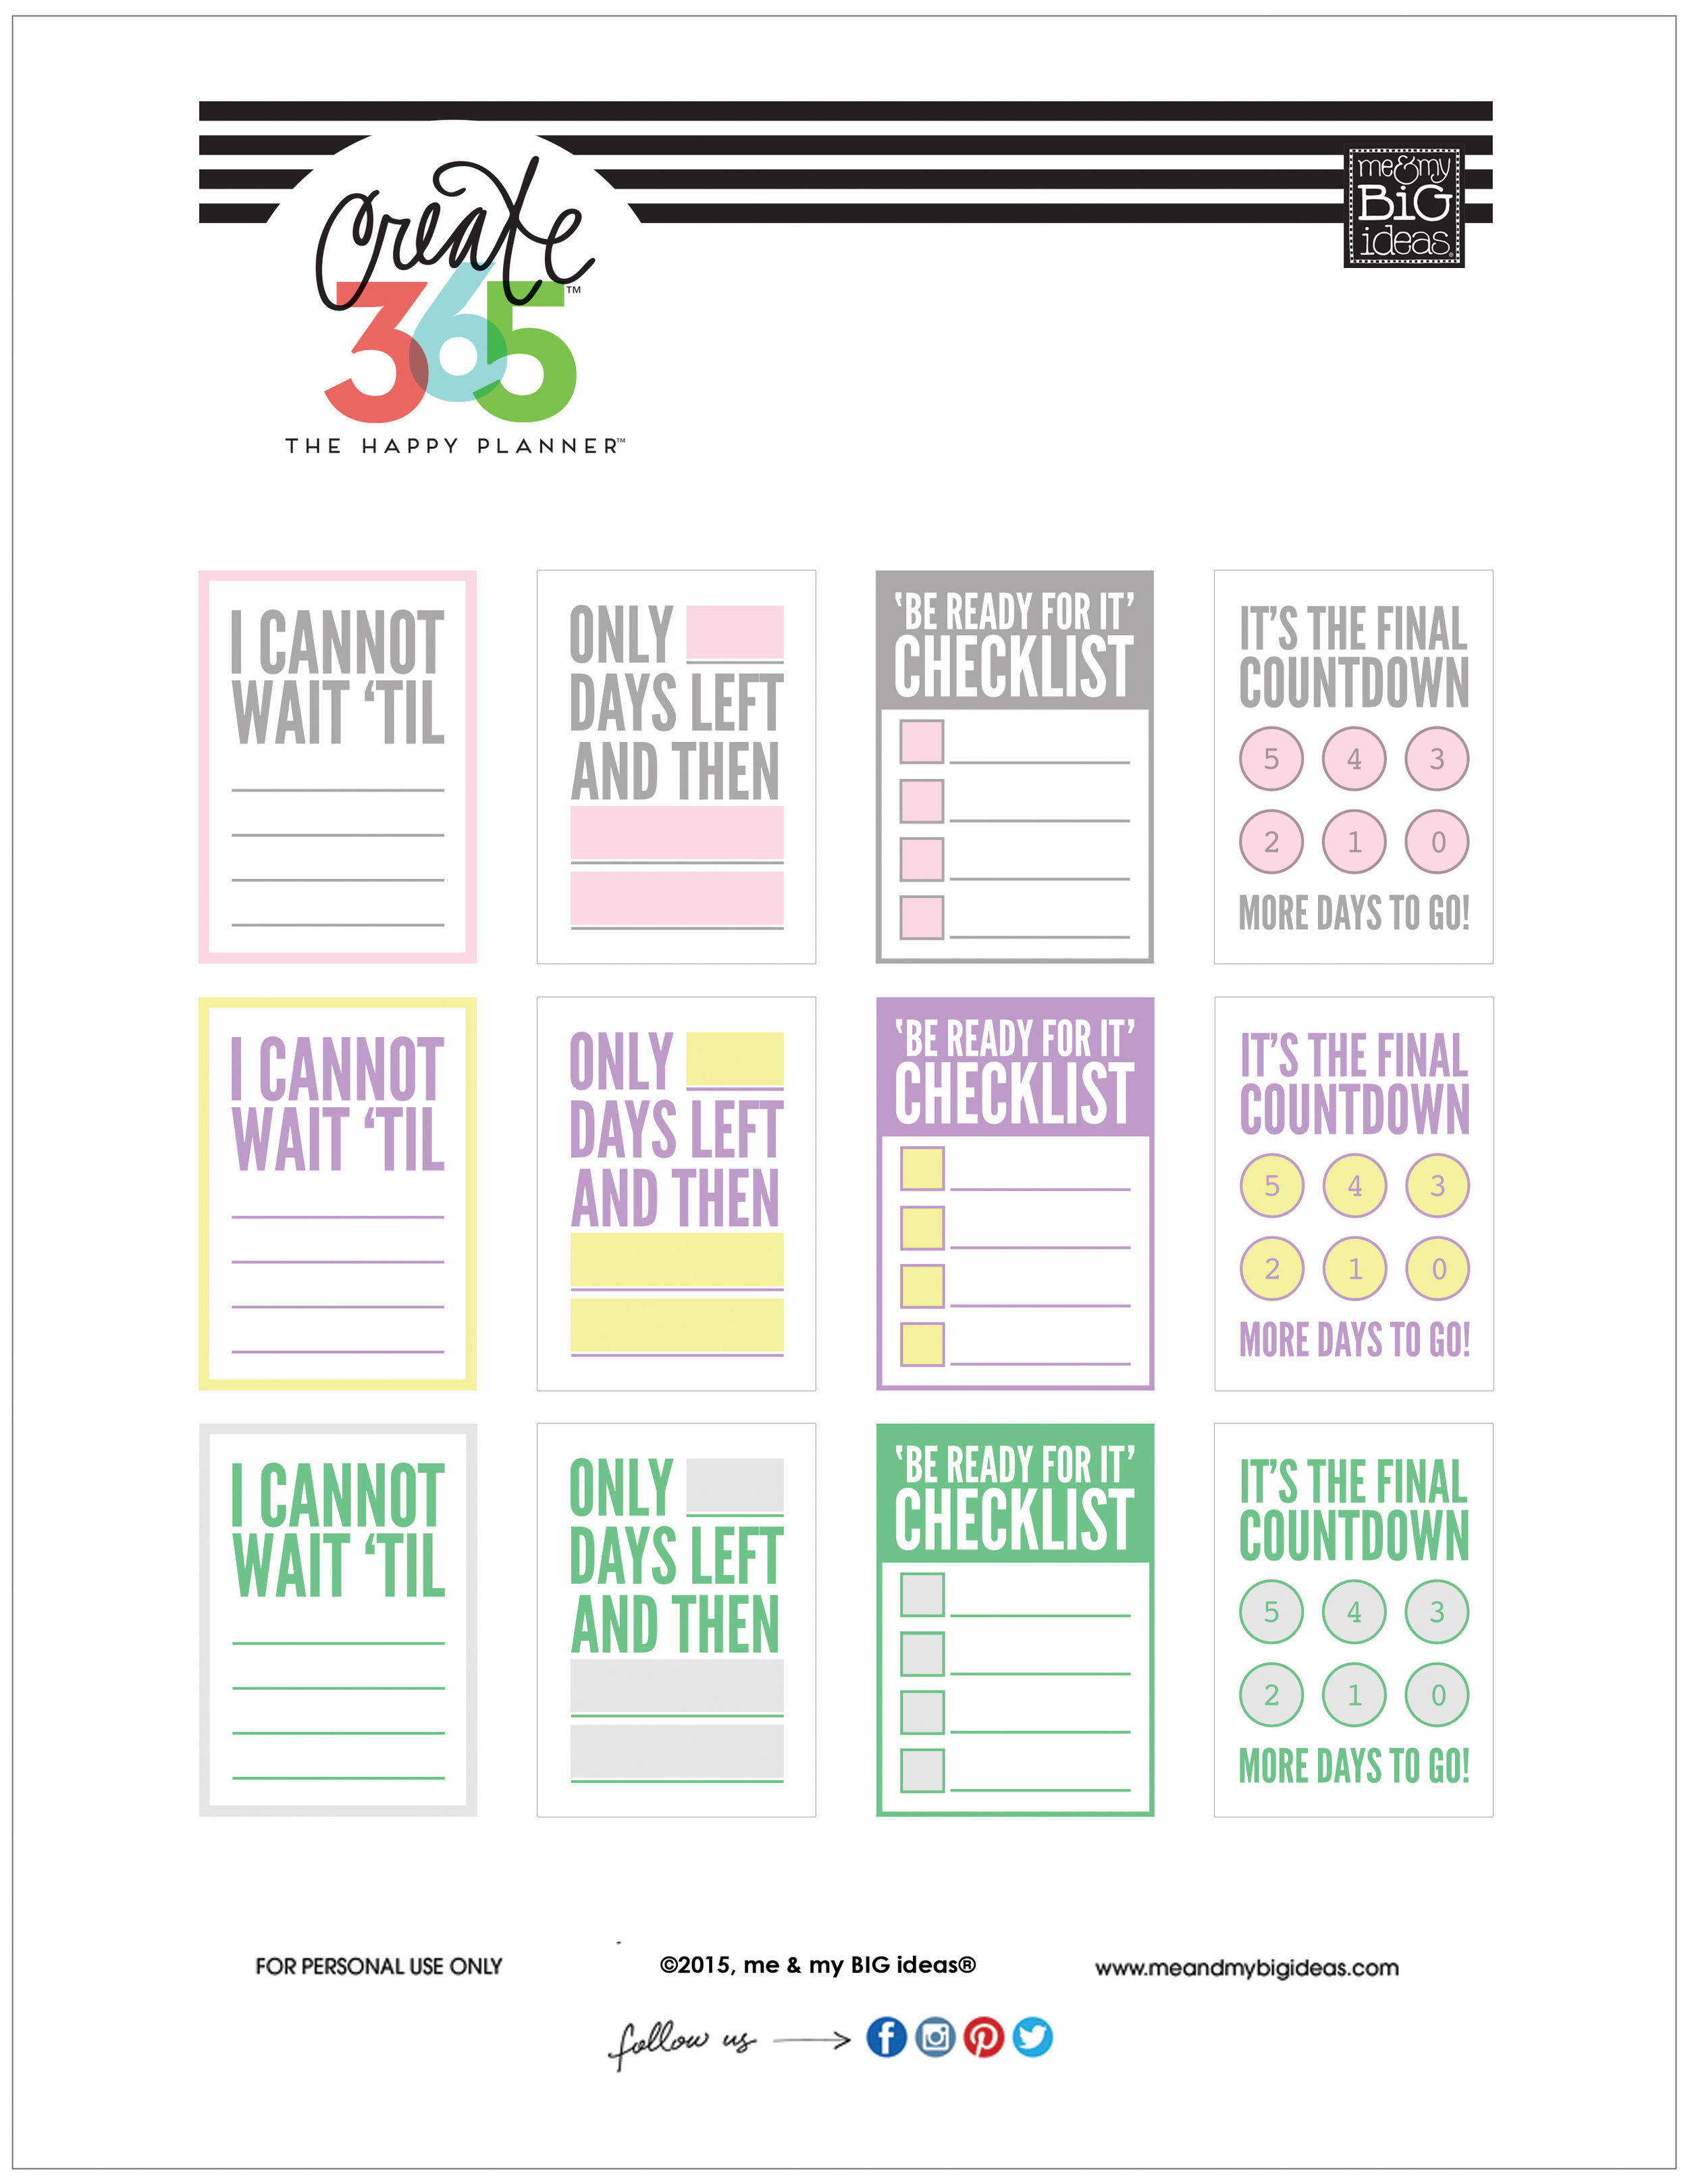 'COUNTDOWN' free printables for The Happy Planner™ | me & my Big ideas